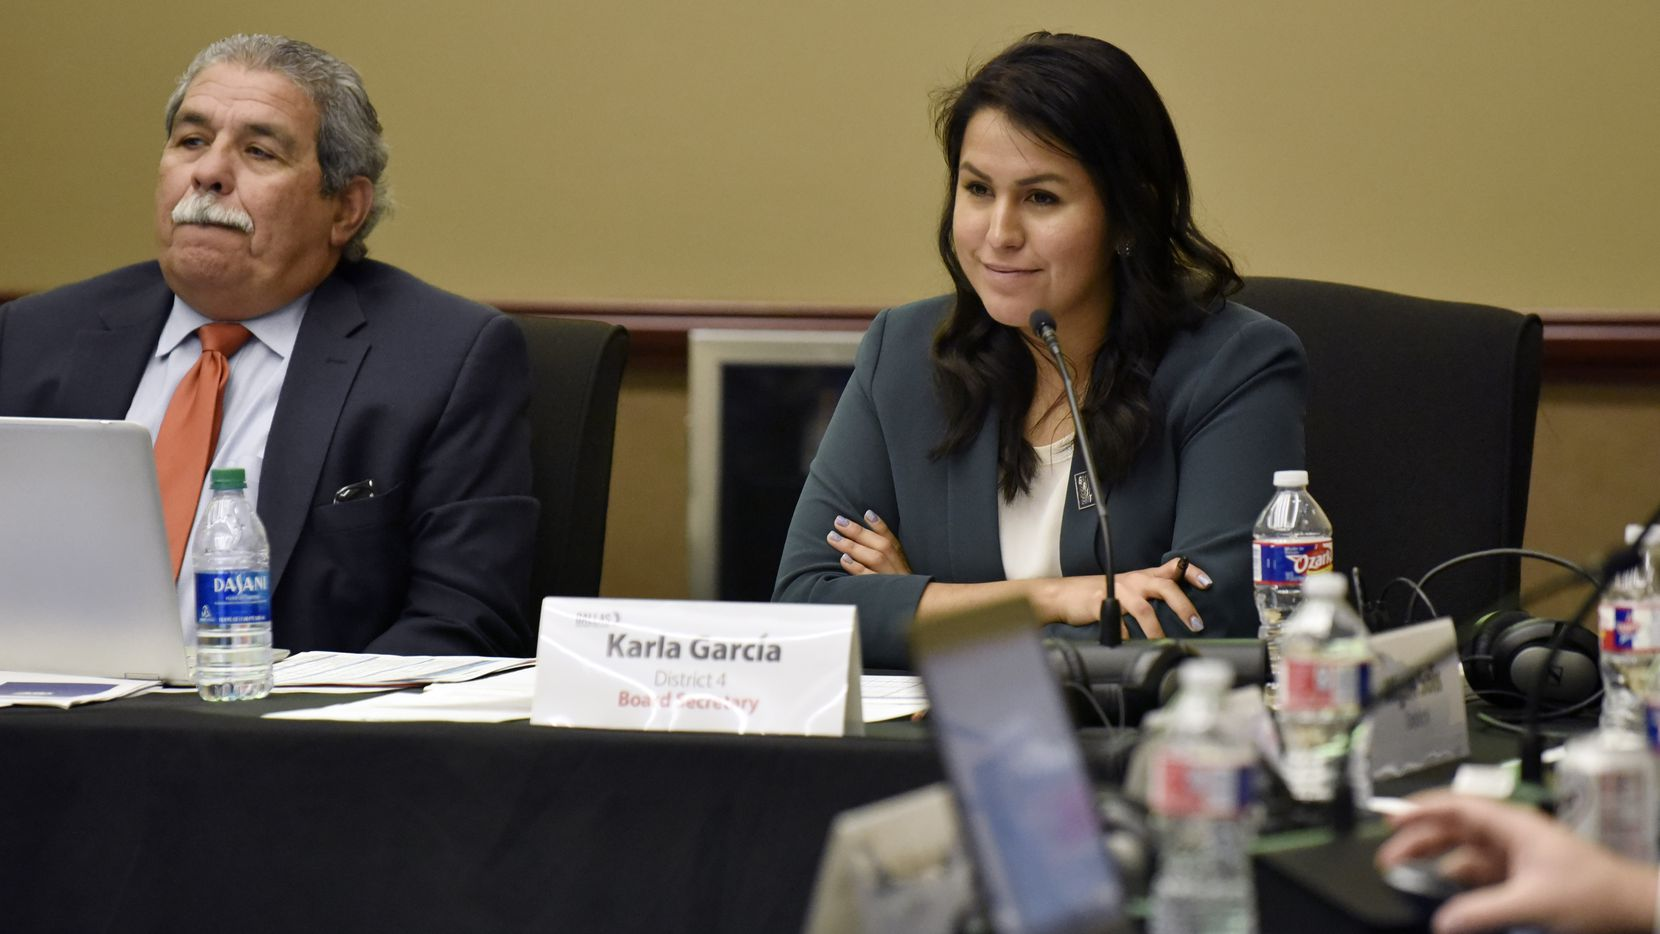 DISD board trustee Karla Garcia of District 4 listened to a presentation with Superintendent Michael Hinojosa during a Dec. 5 meeting at the Dallas County Schools Technology and Training Center.